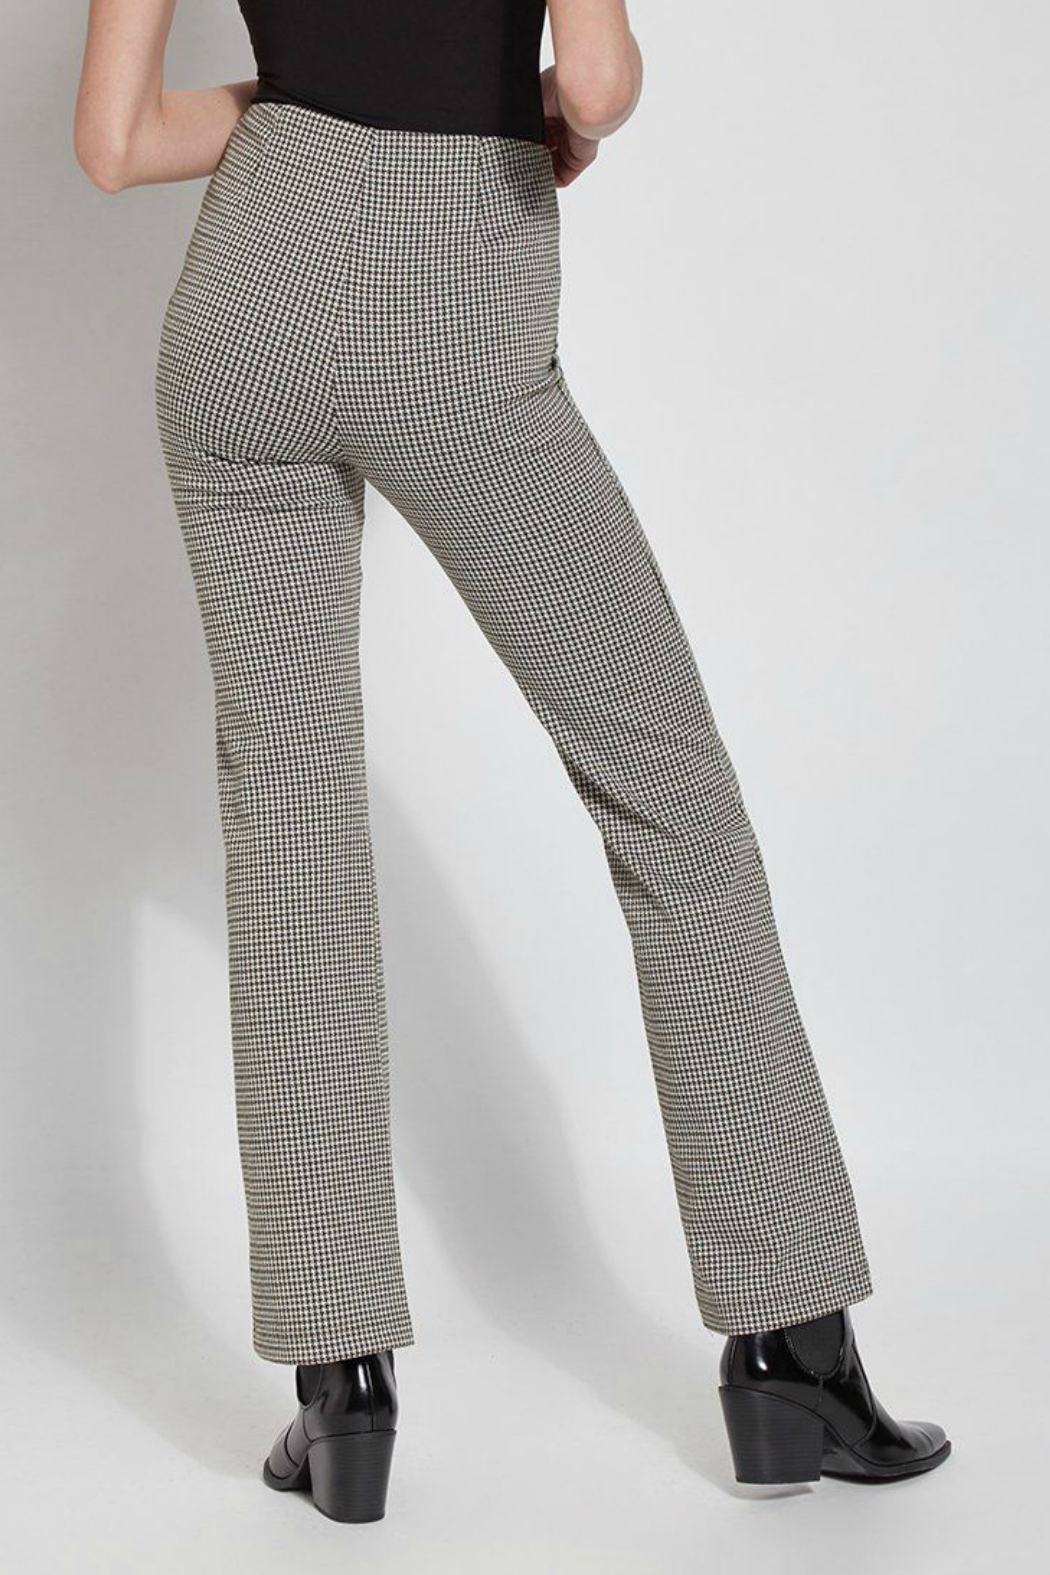 Lysse Elysse Houndstooth Bootcut Pull-on Pant - Side Cropped Image